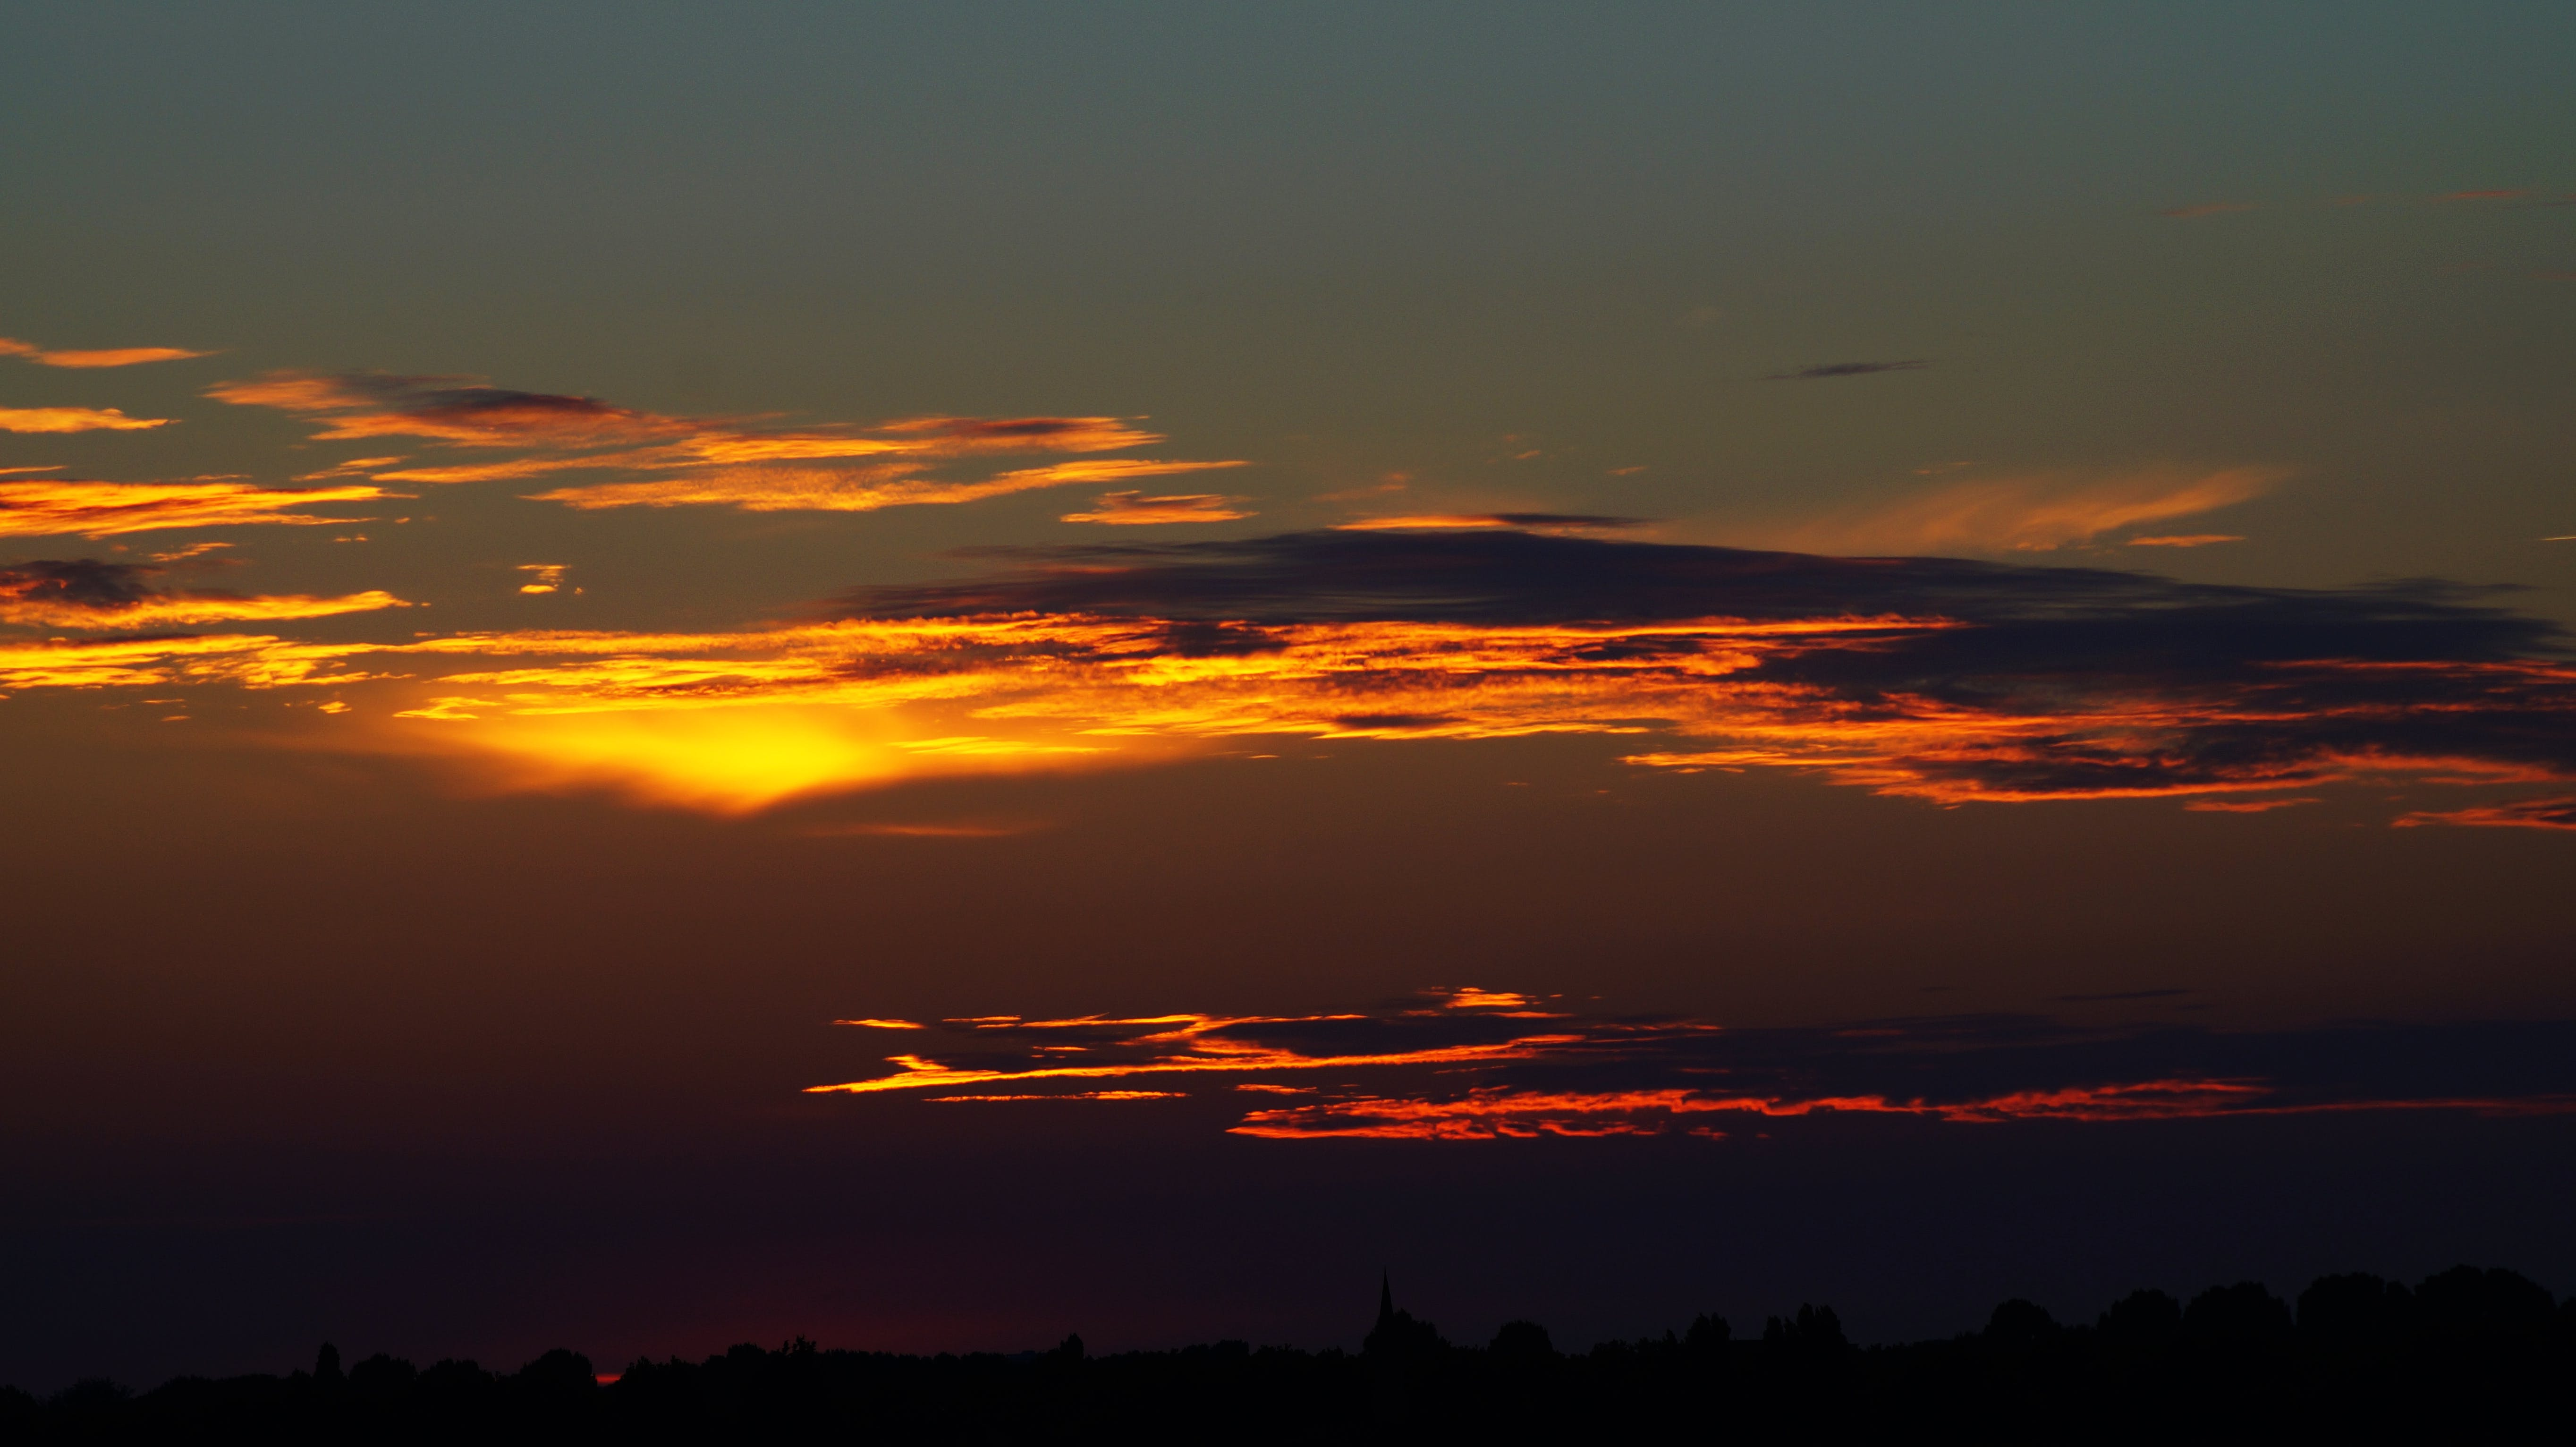 Black Clouds during Sunset Landscape Photography